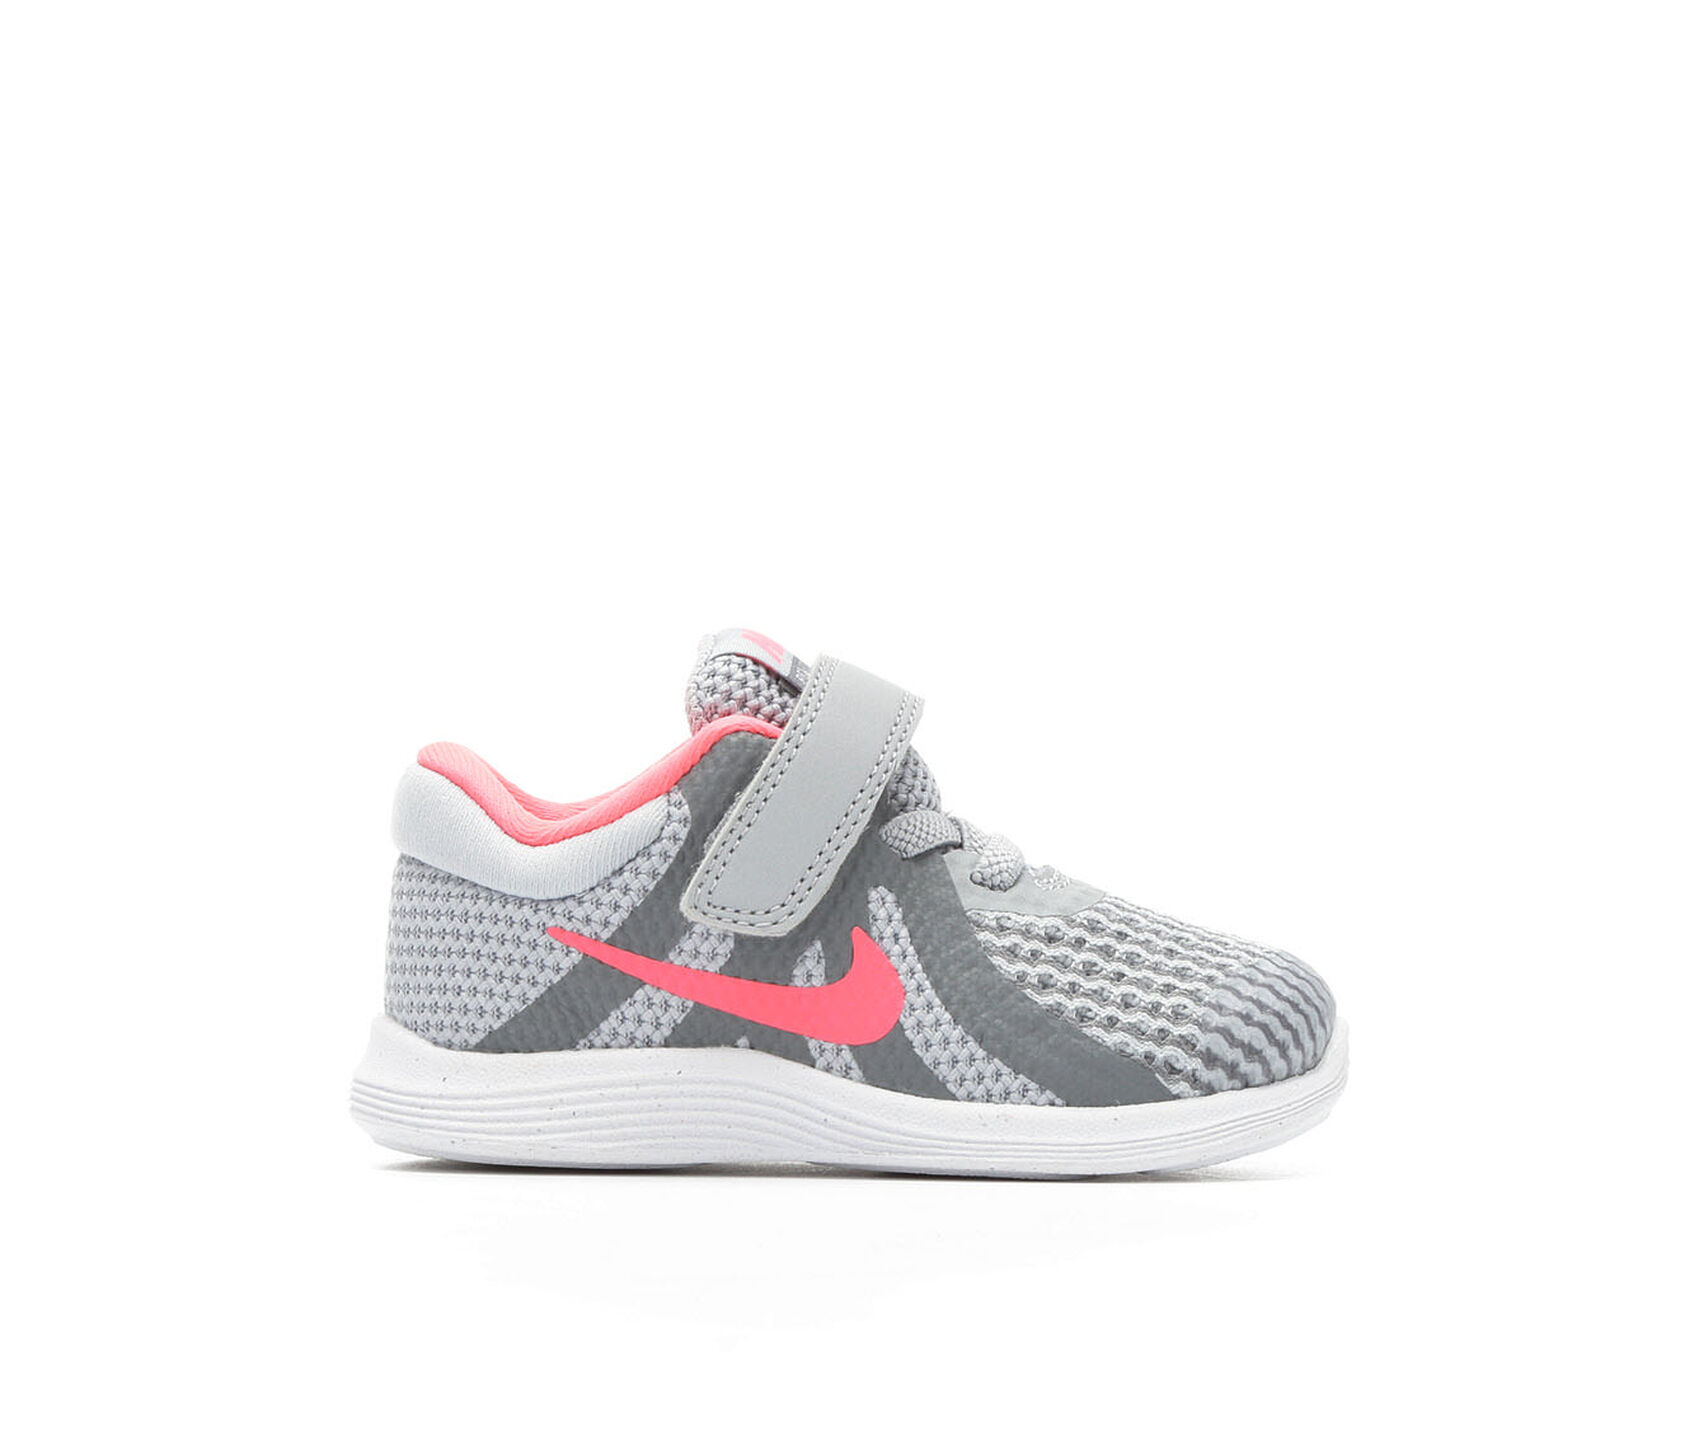 buy online 82823 caa0a ... Toddler Revolution 4 Running Shoes. Previous